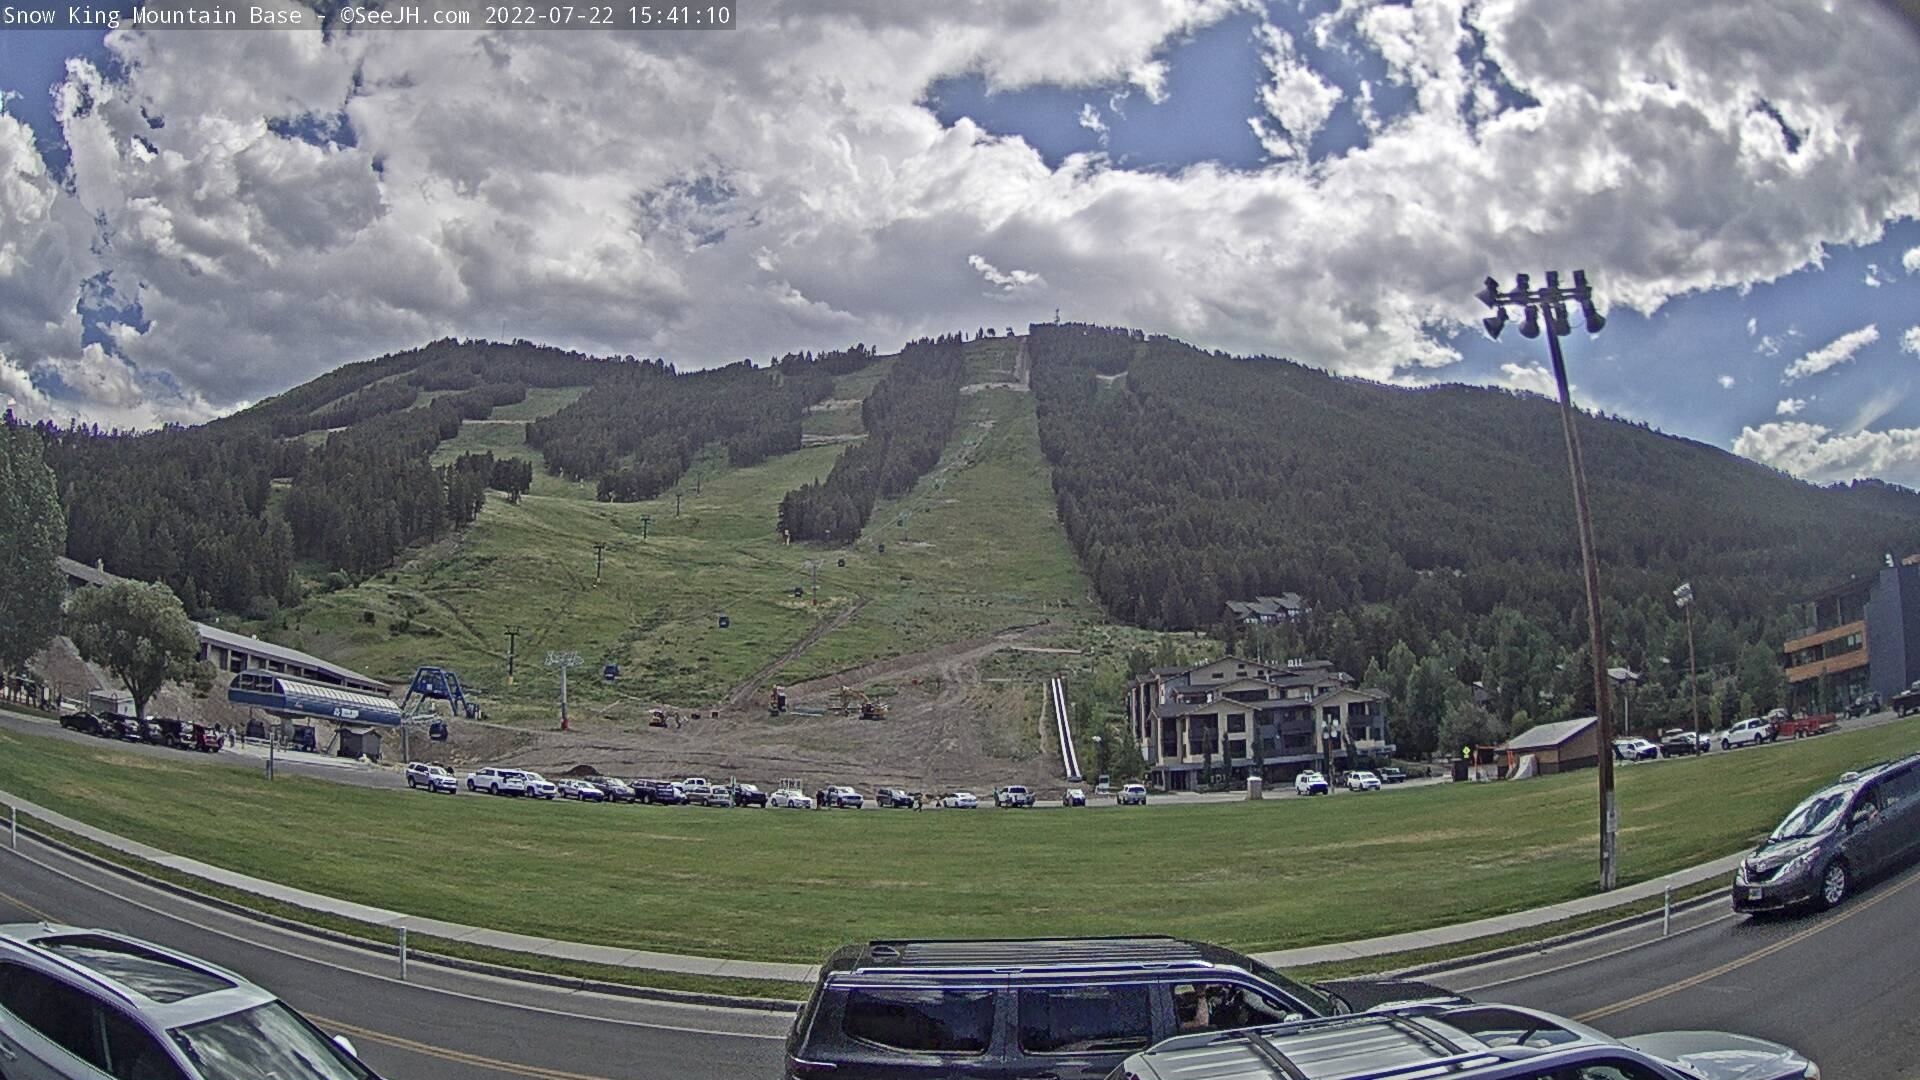 Snow King Resort Base Webcam Image